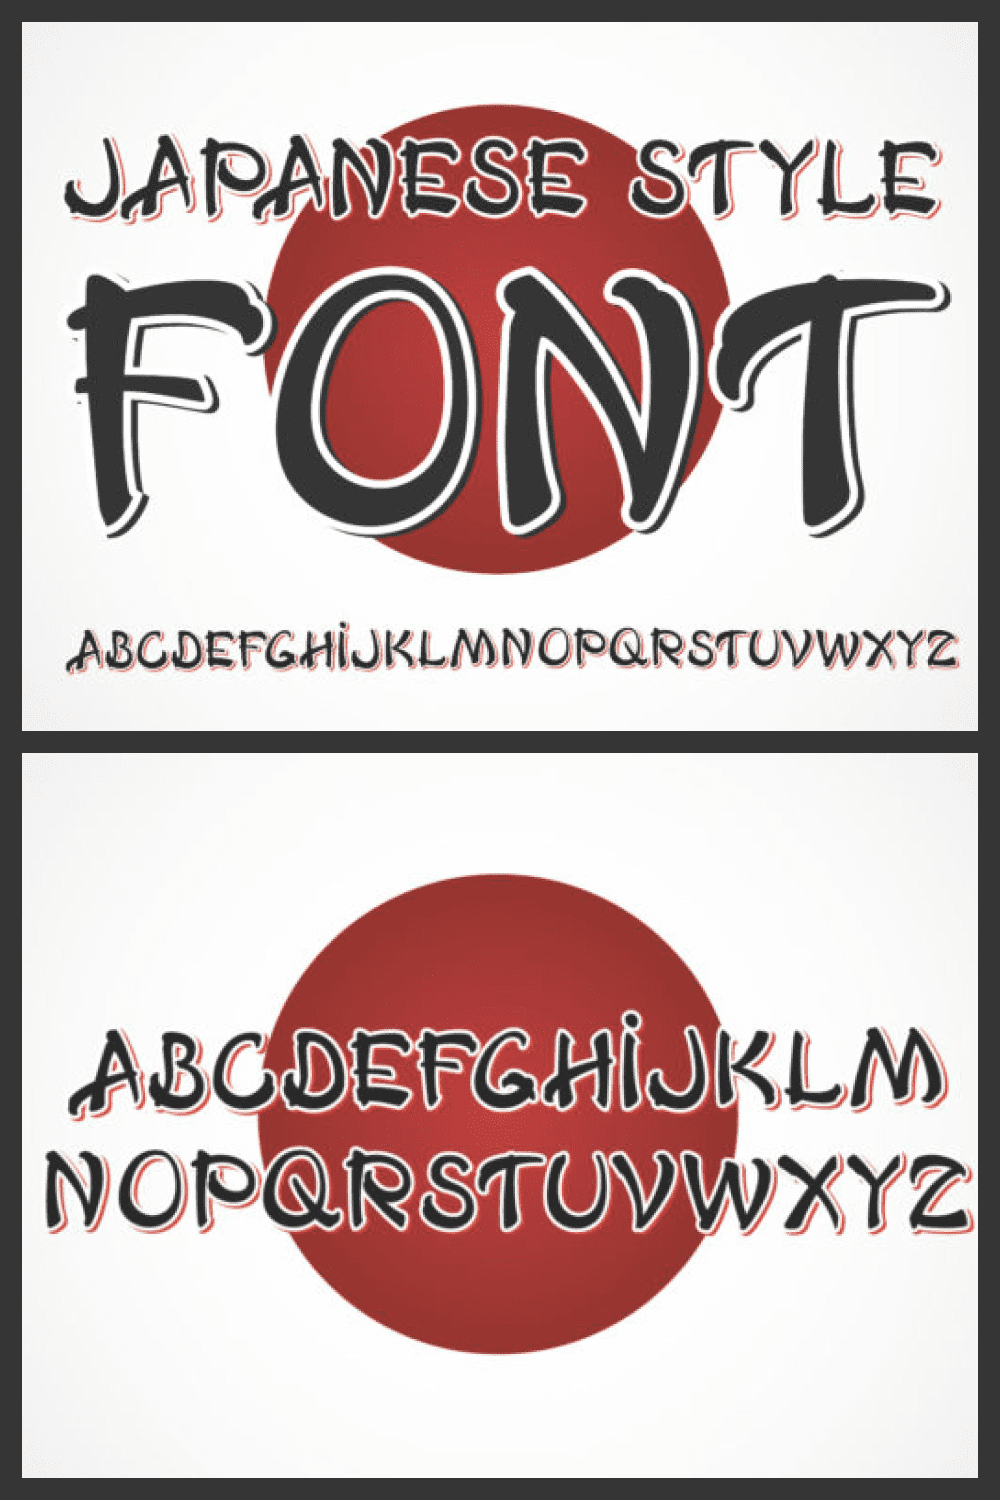 Japanese is an incredibly daring and genuine display font.